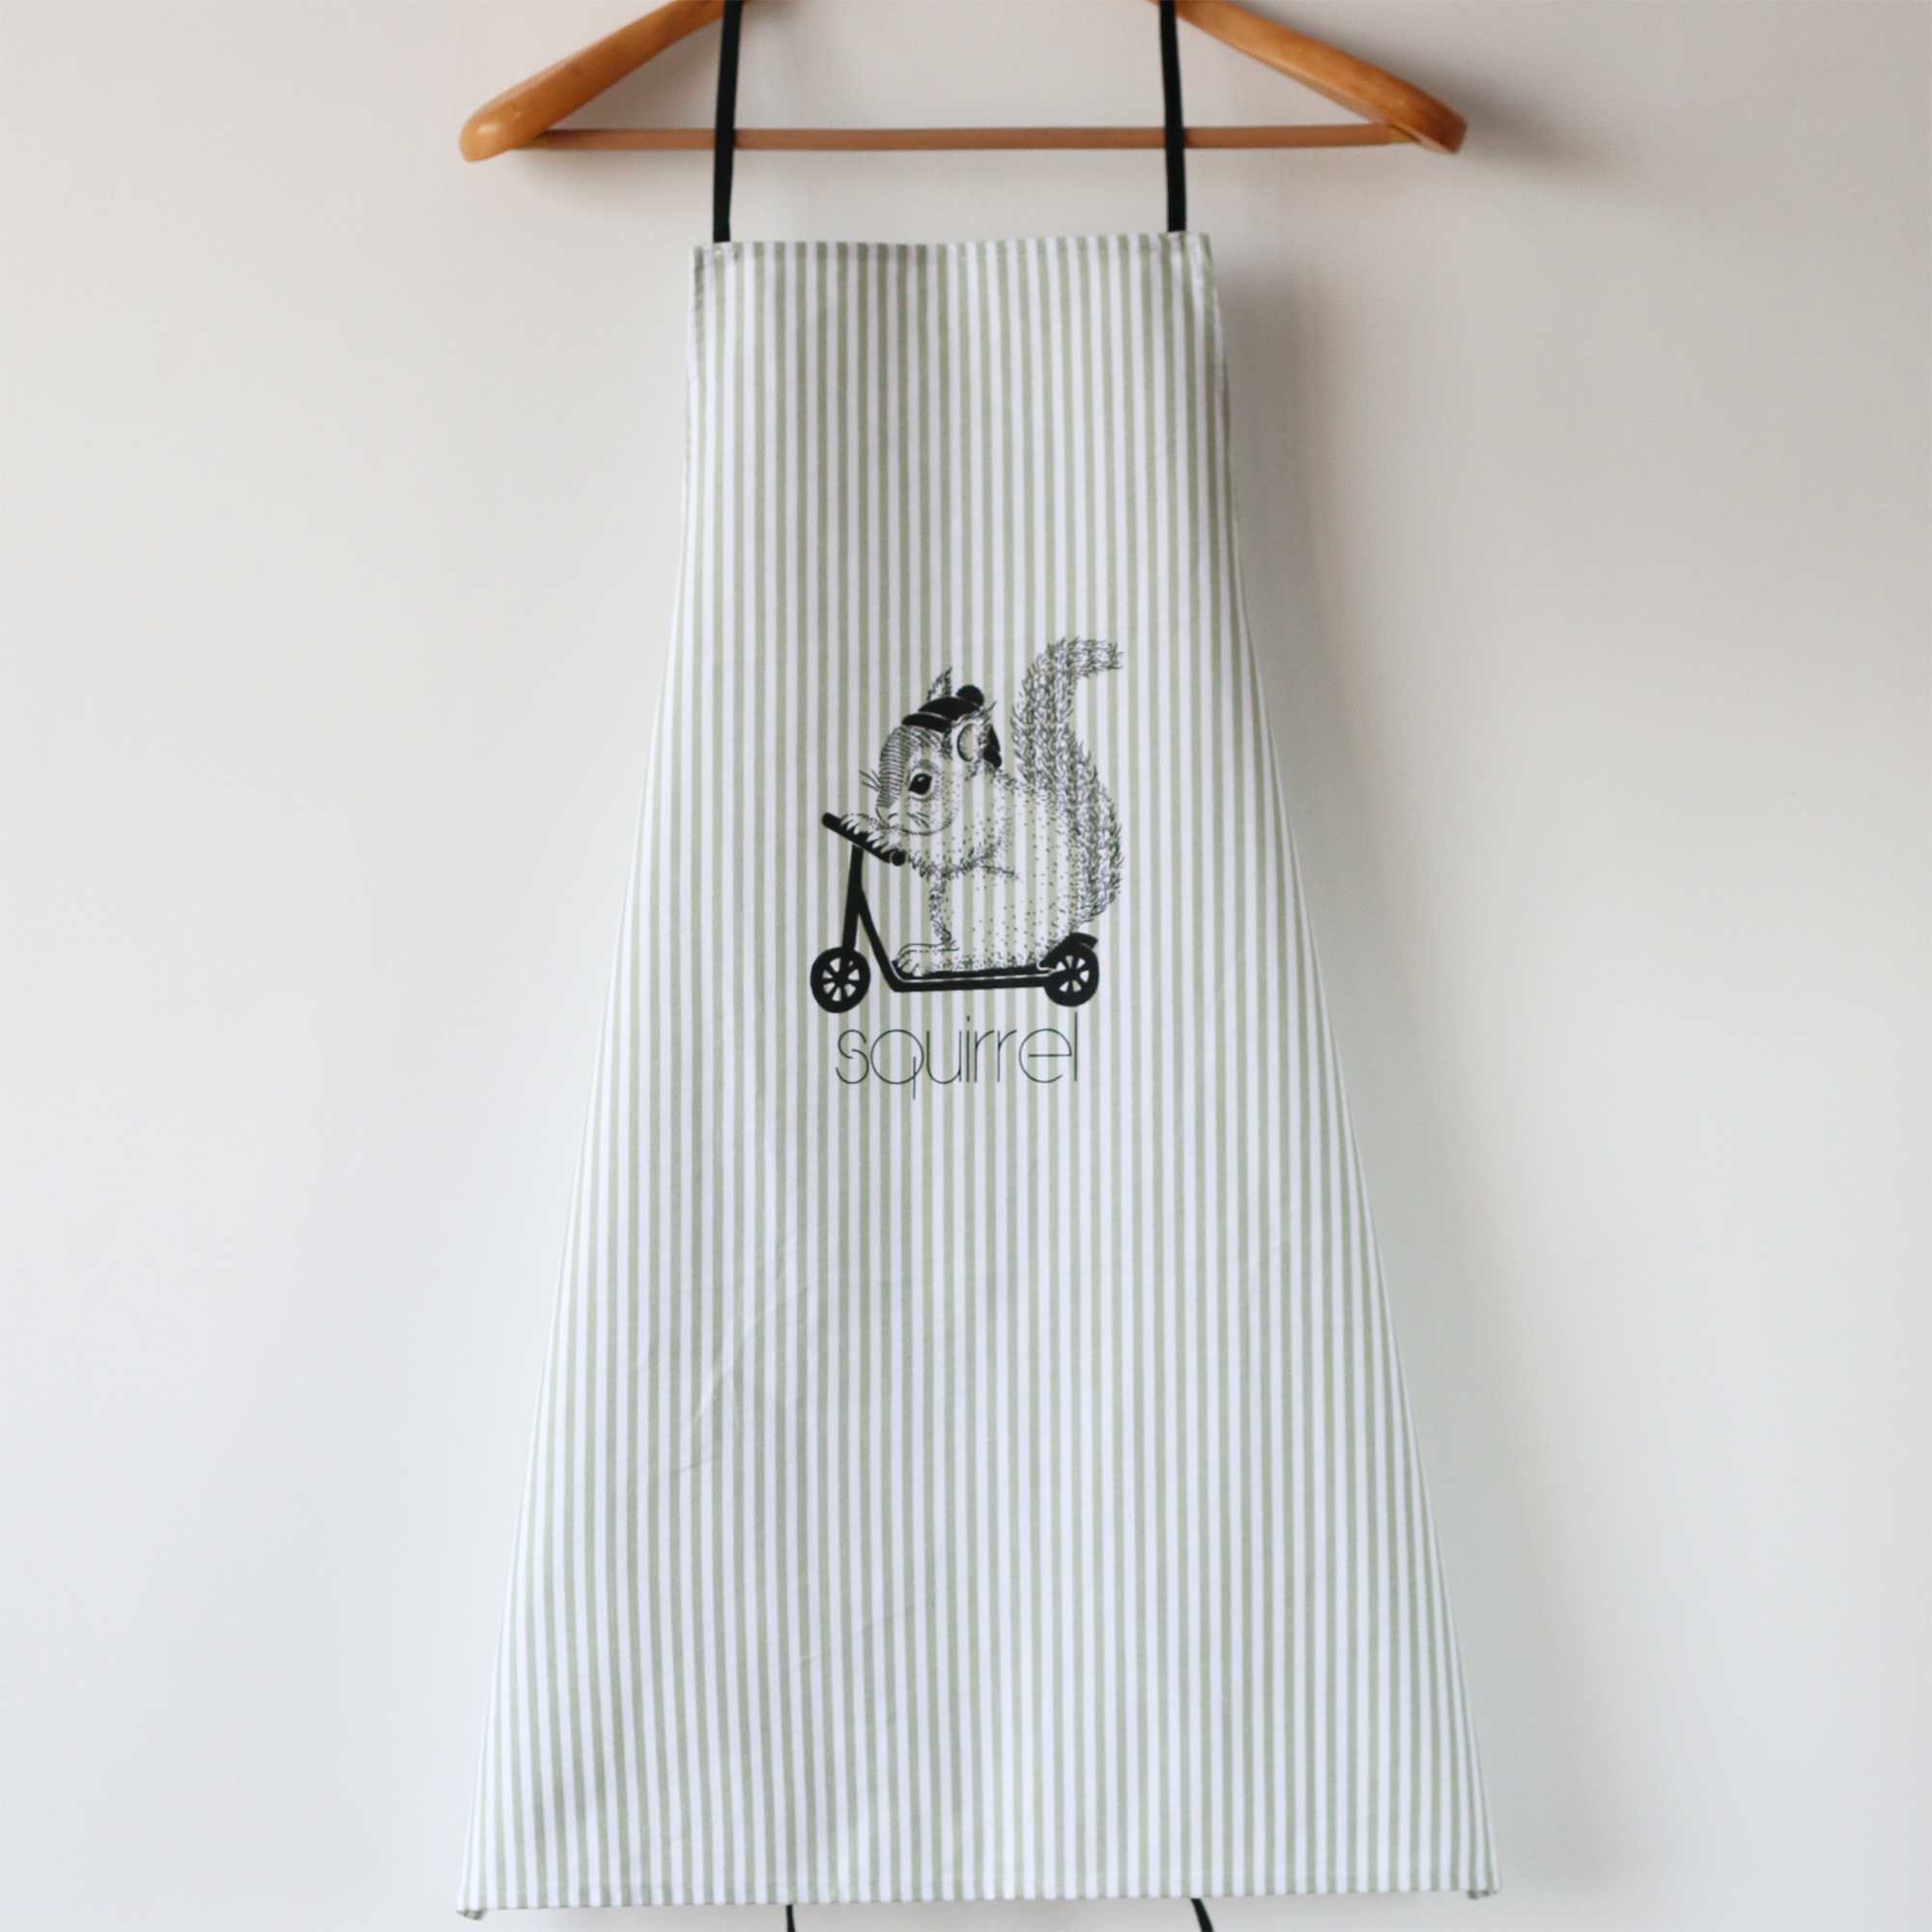 White apron gourmet